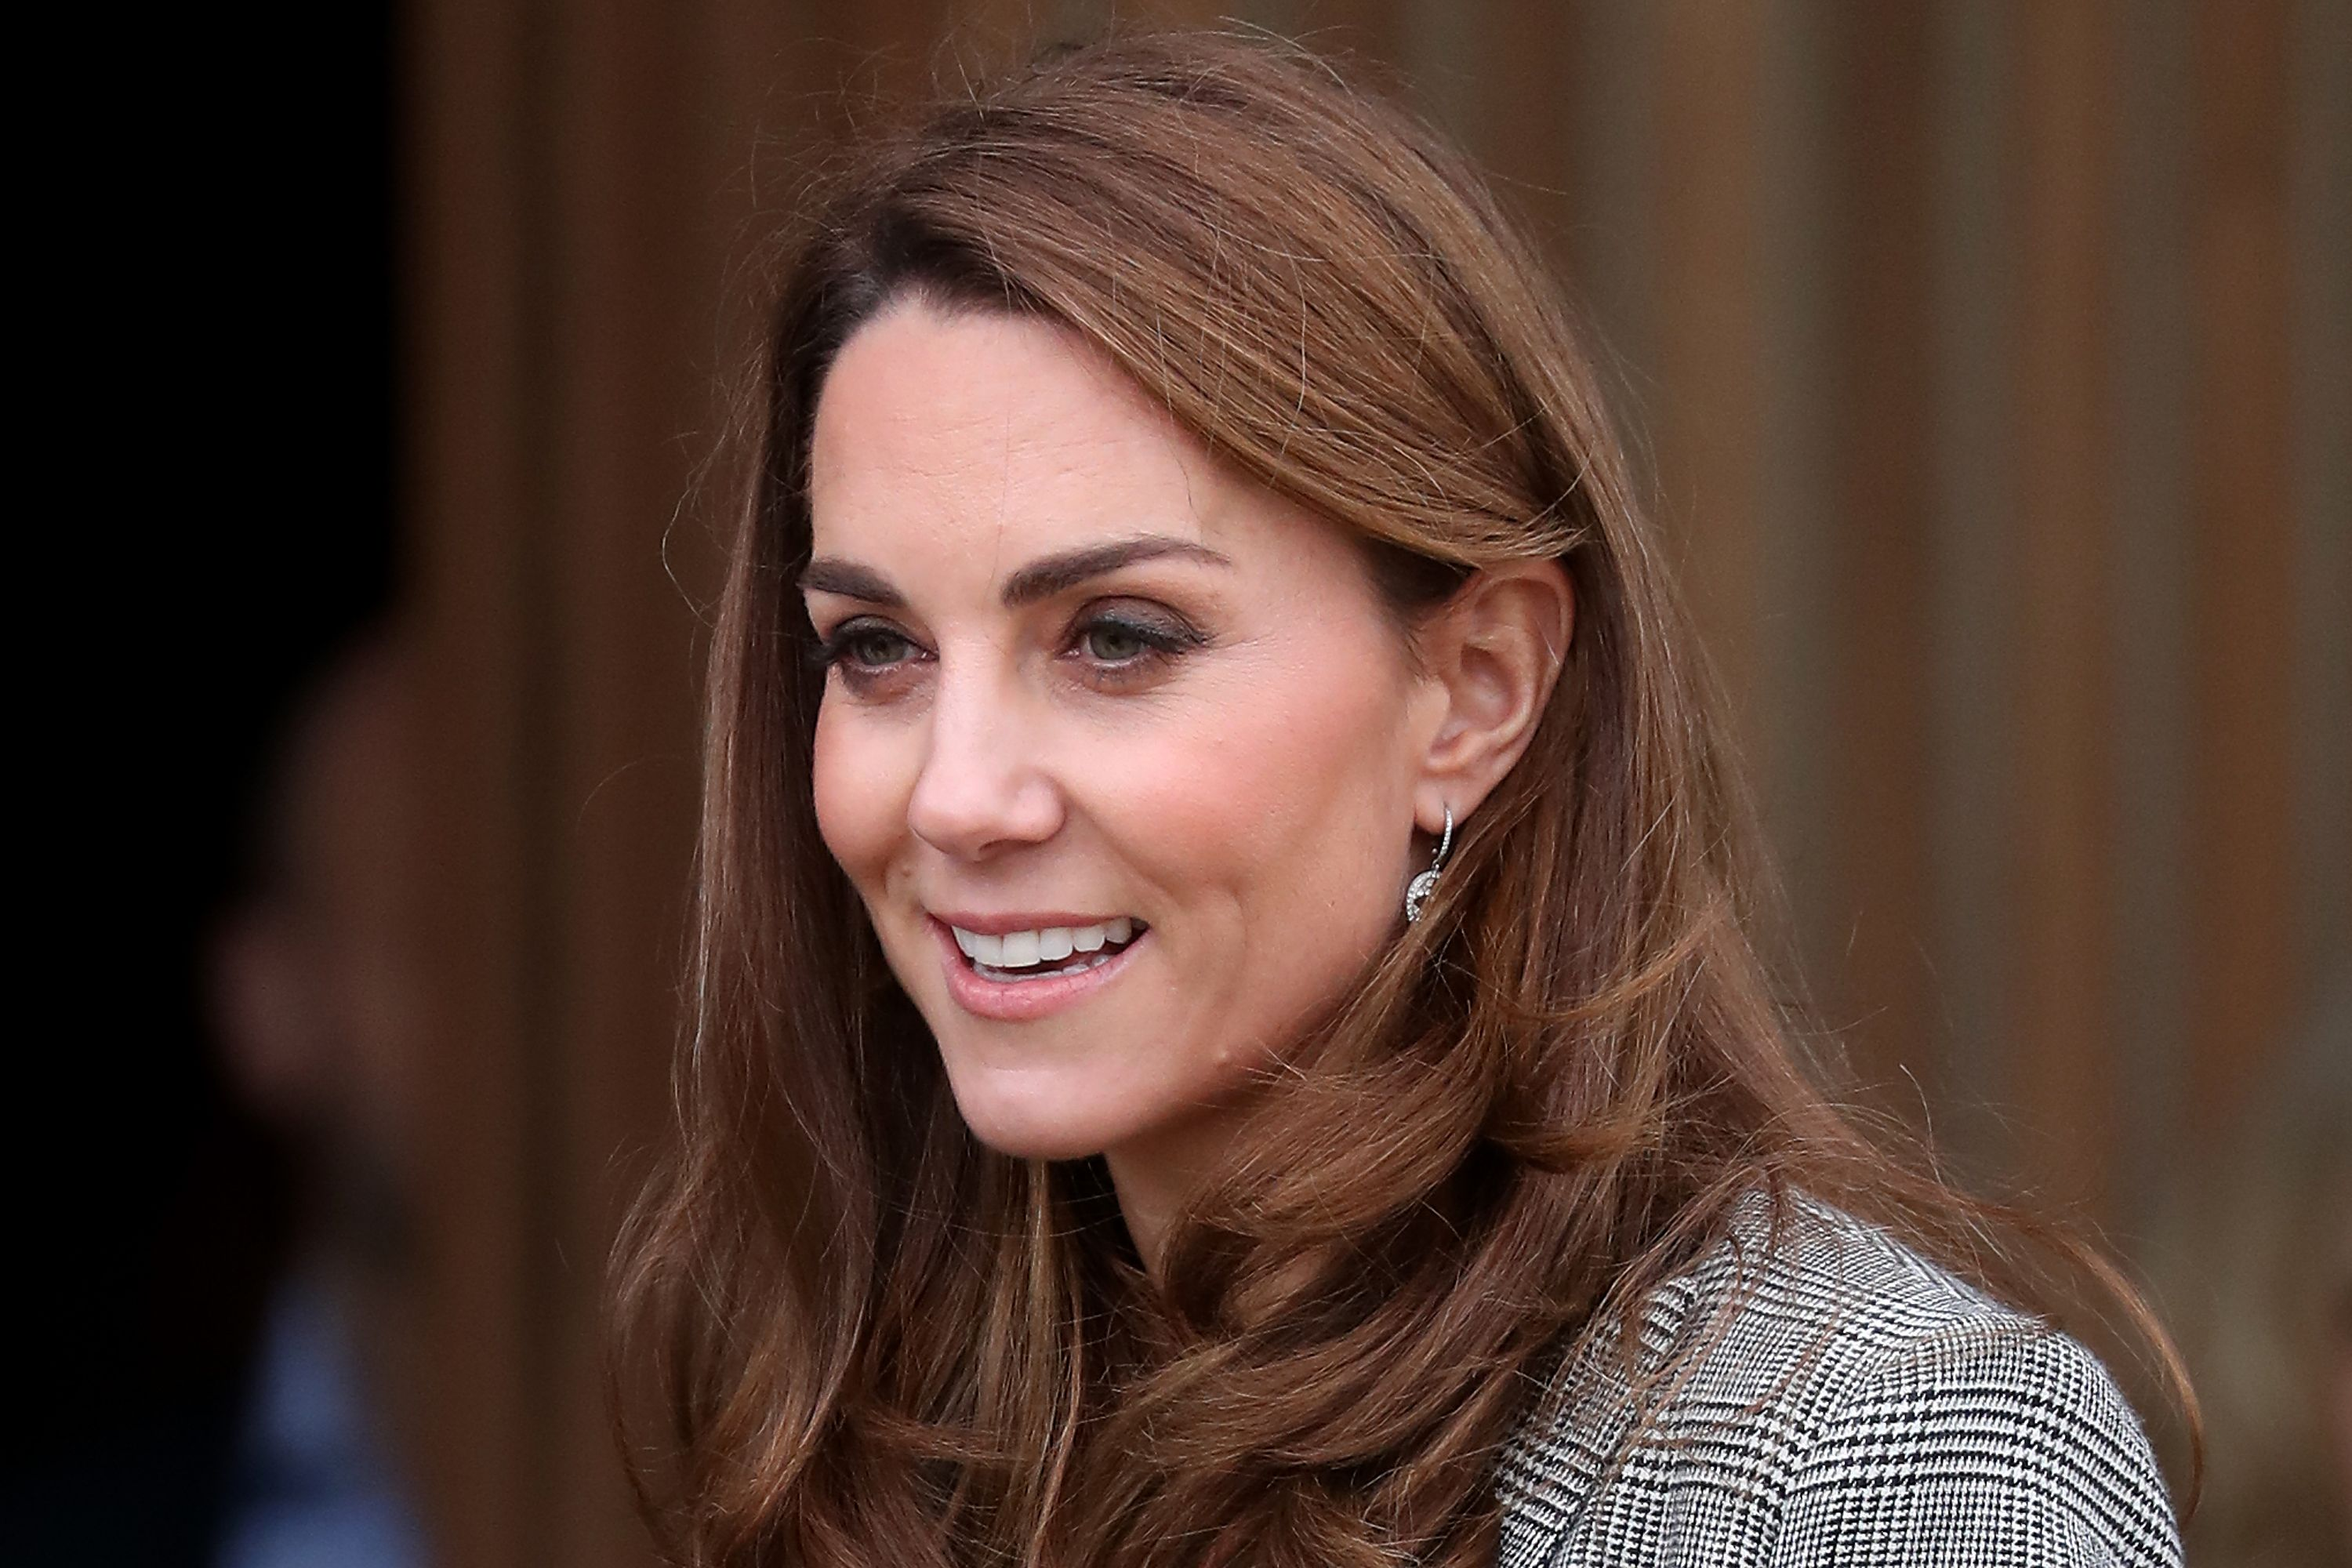 Kate Middleton Is A Huge Fan Of Our Favourite TV Show At The Moment So We're Basically Twins